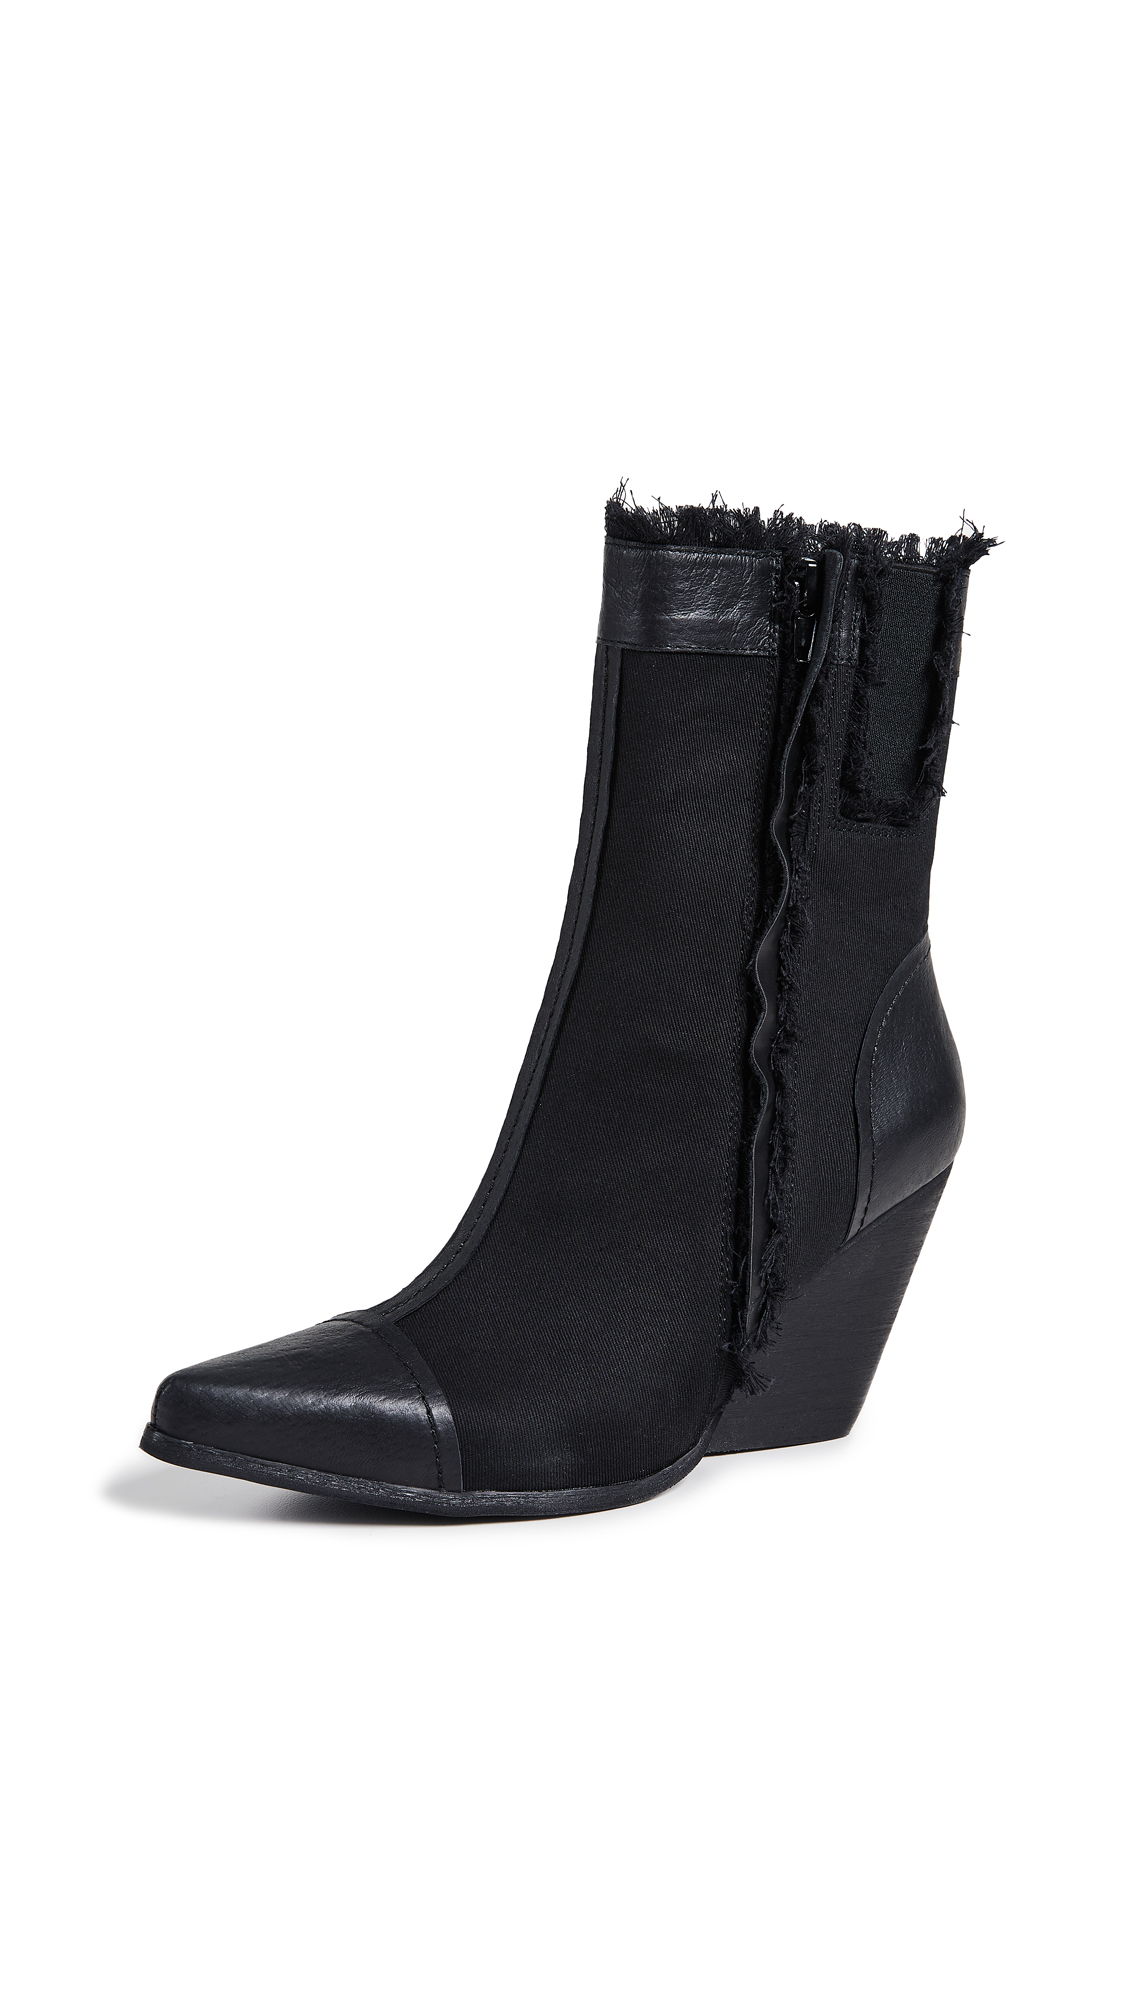 Jeffrey Campbell Unravel Point Toe Booties - Black Combo